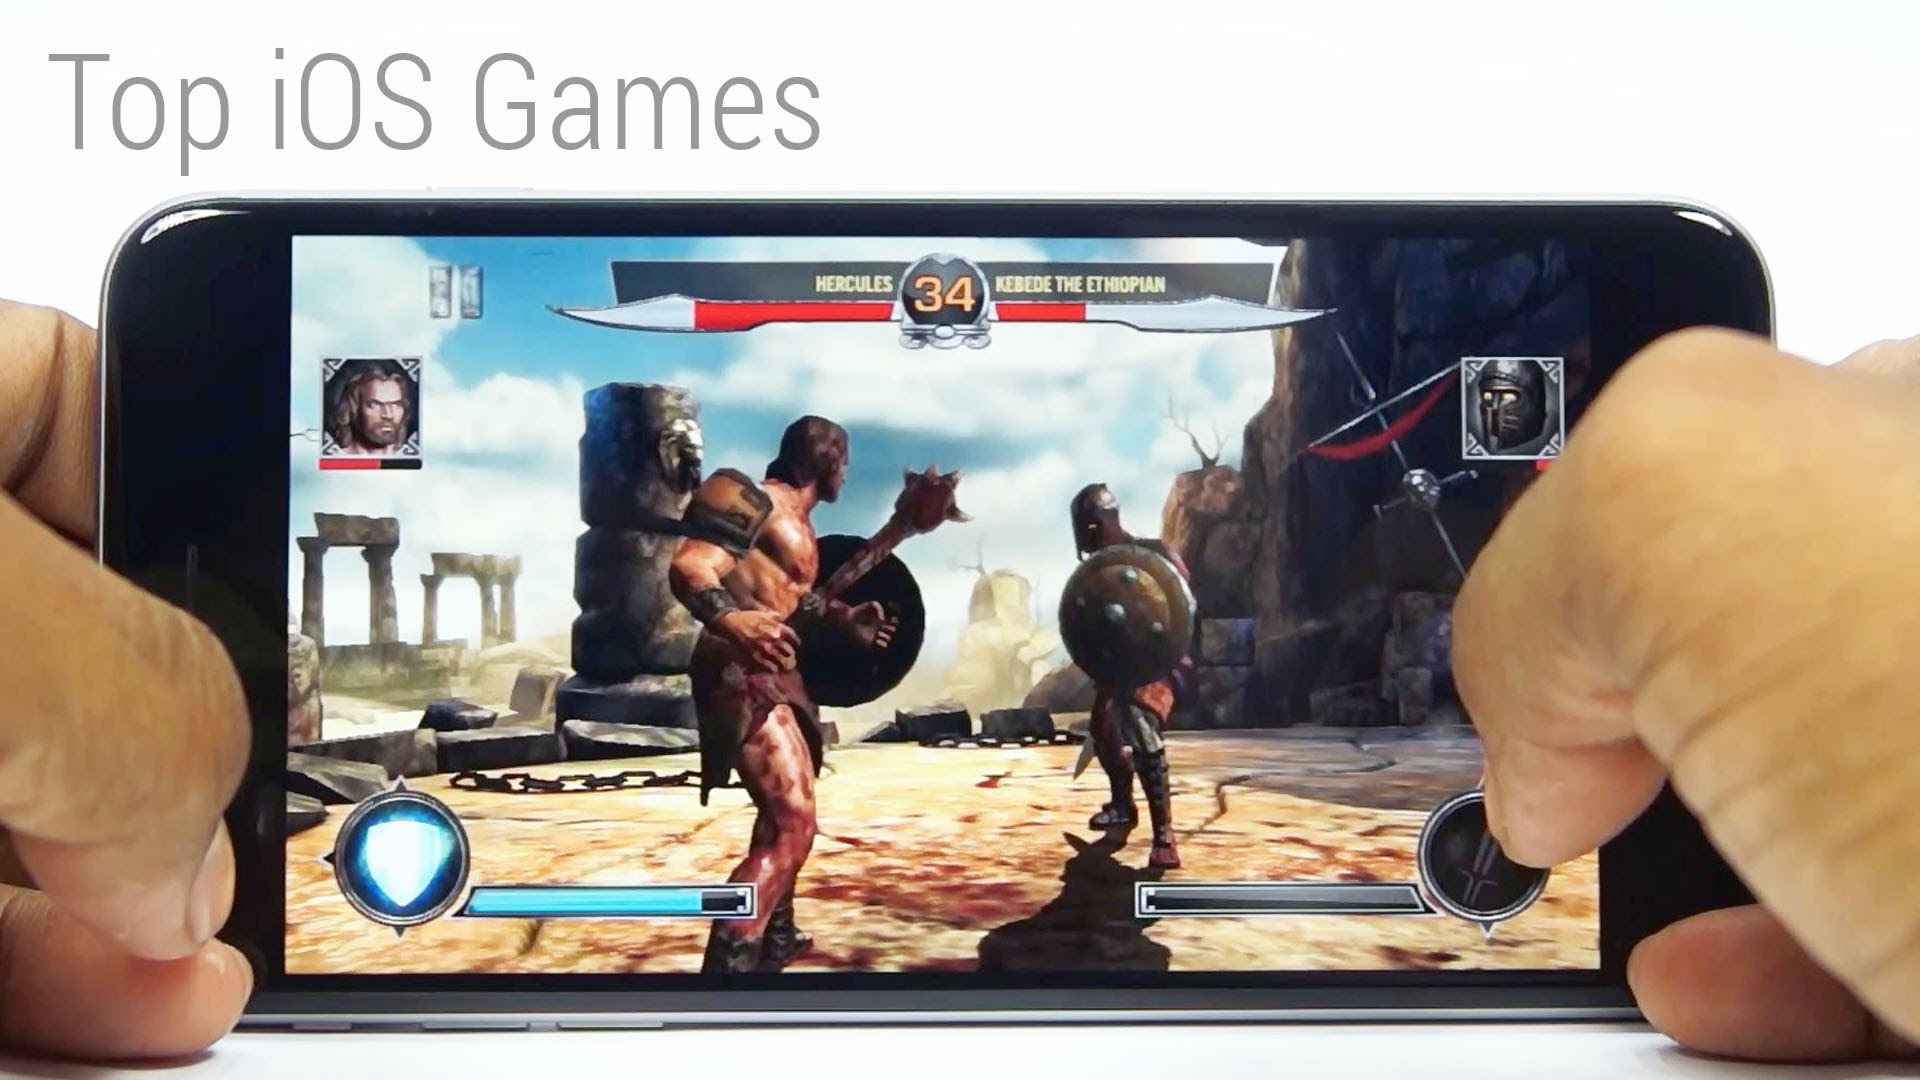 Top 10 HD Games (Free) for your iPhone 6 Plus - Games4iOS #3 | Apple